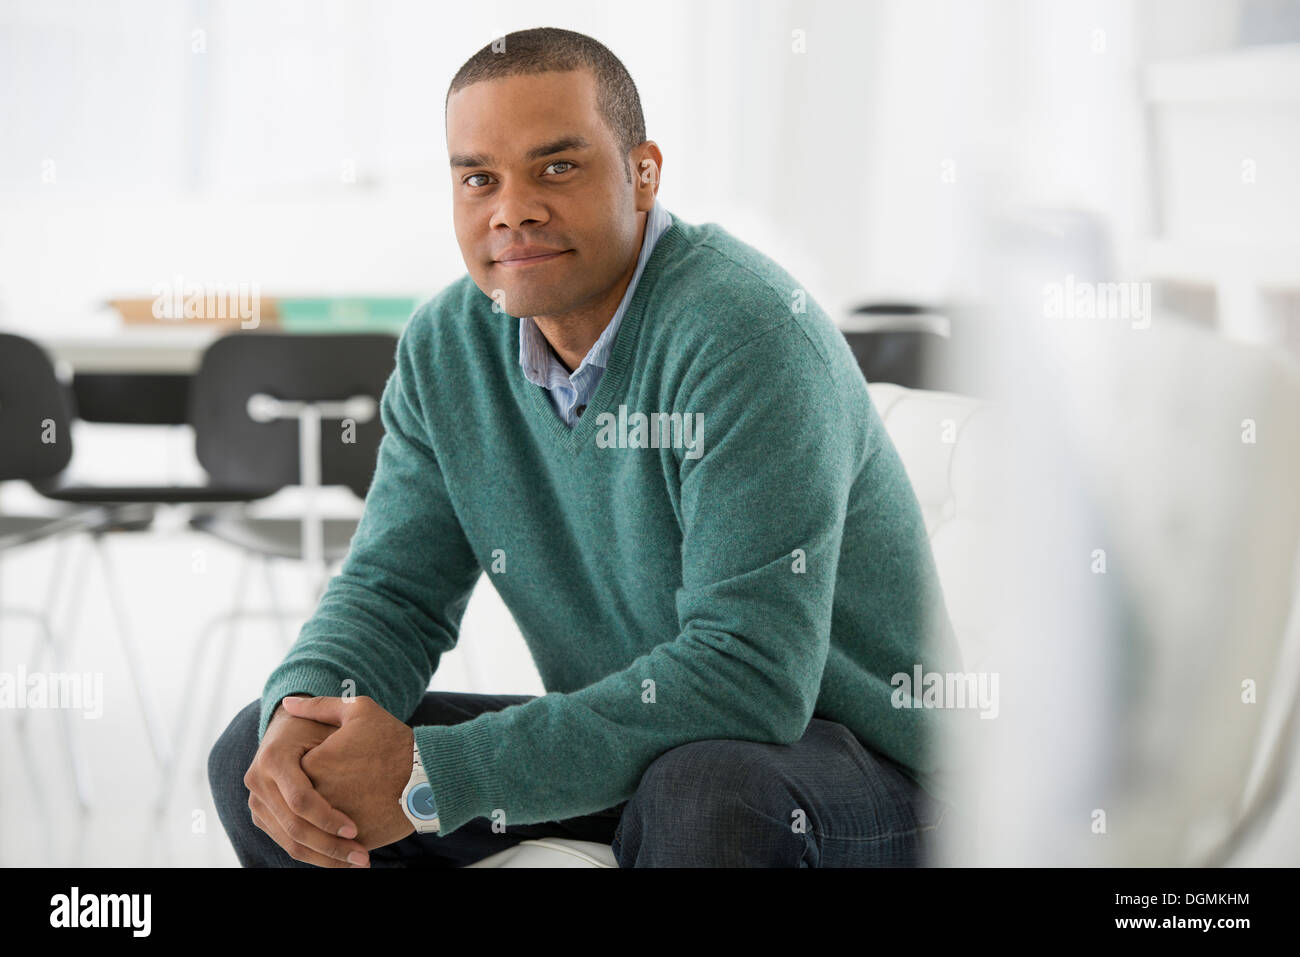 Business. A man sitting, hands clasped in a relaxed confident pose. Stock Photo